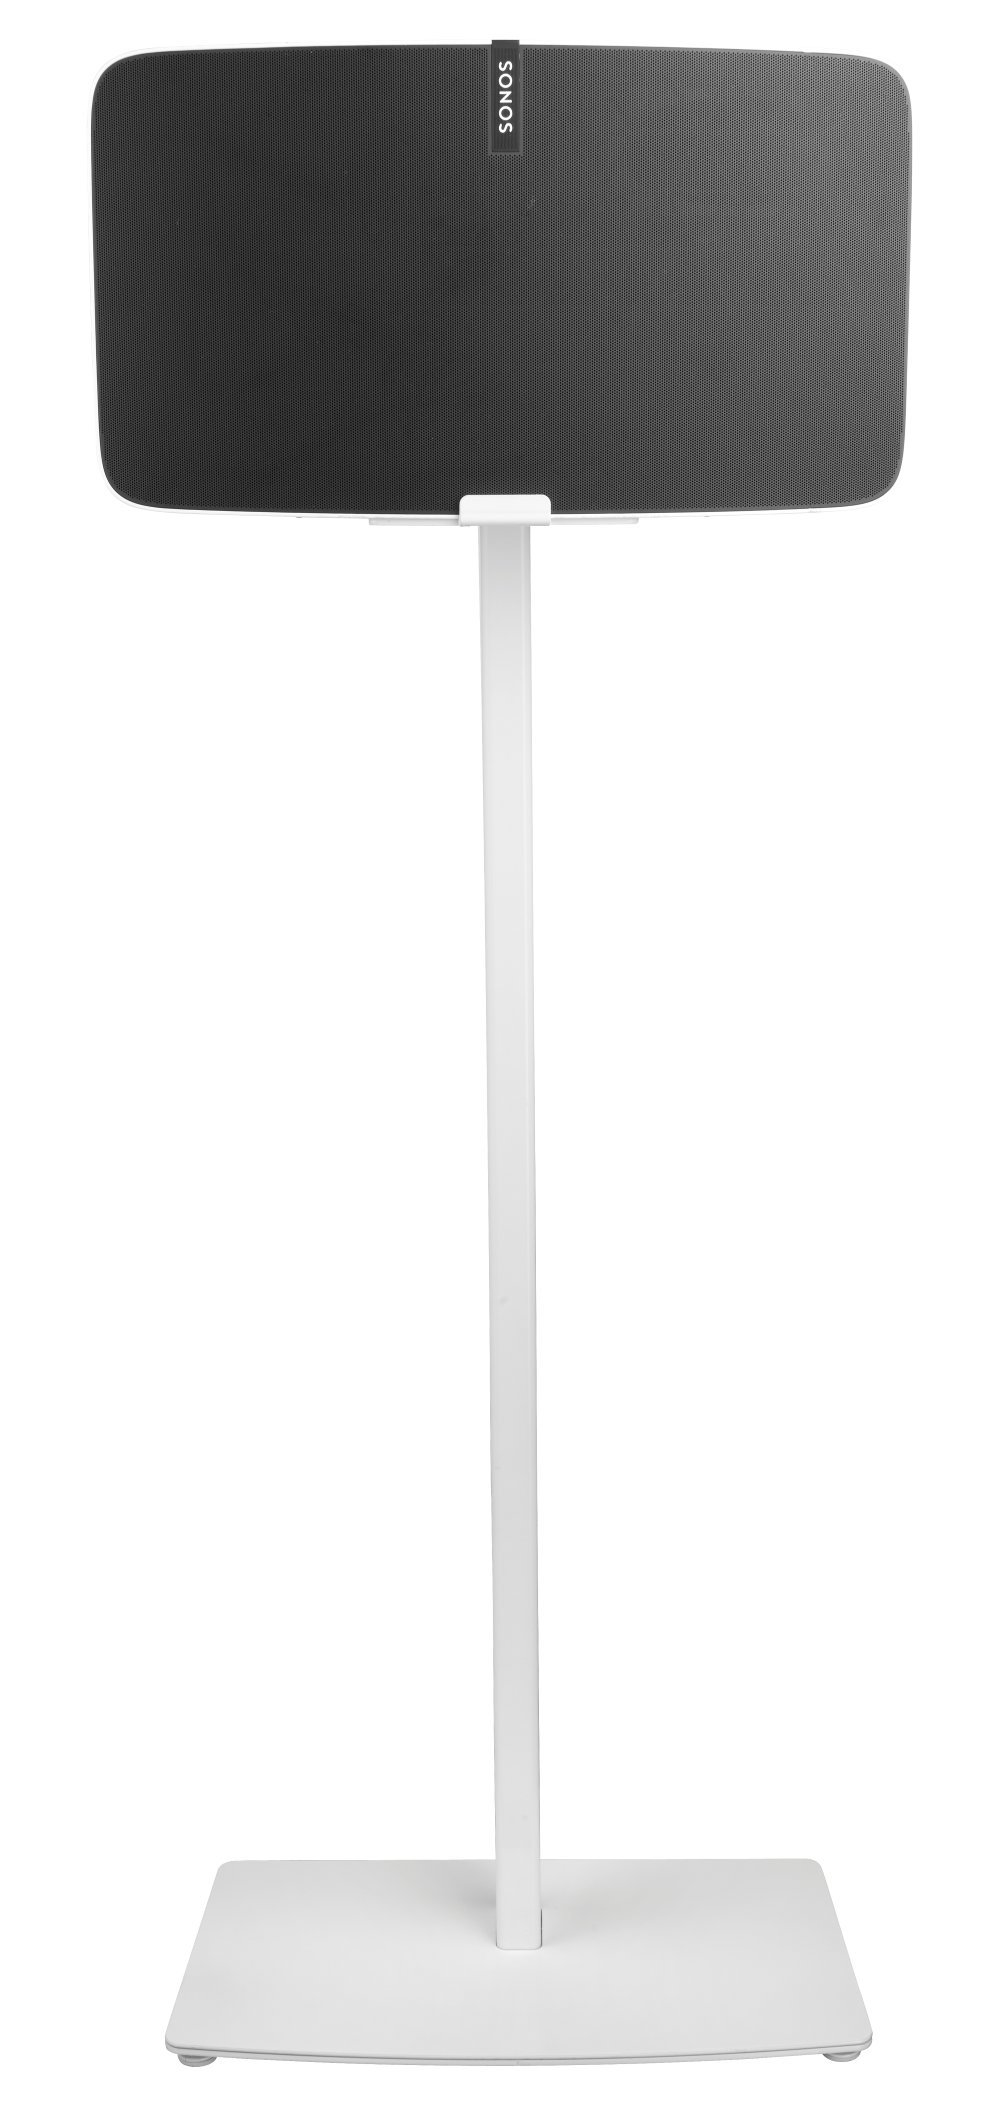 Cavus Floor Stand Suitable for Sonos Play:5 Speakers ( 2nd gen) ( Horizontal) (White, Play:5 Single)